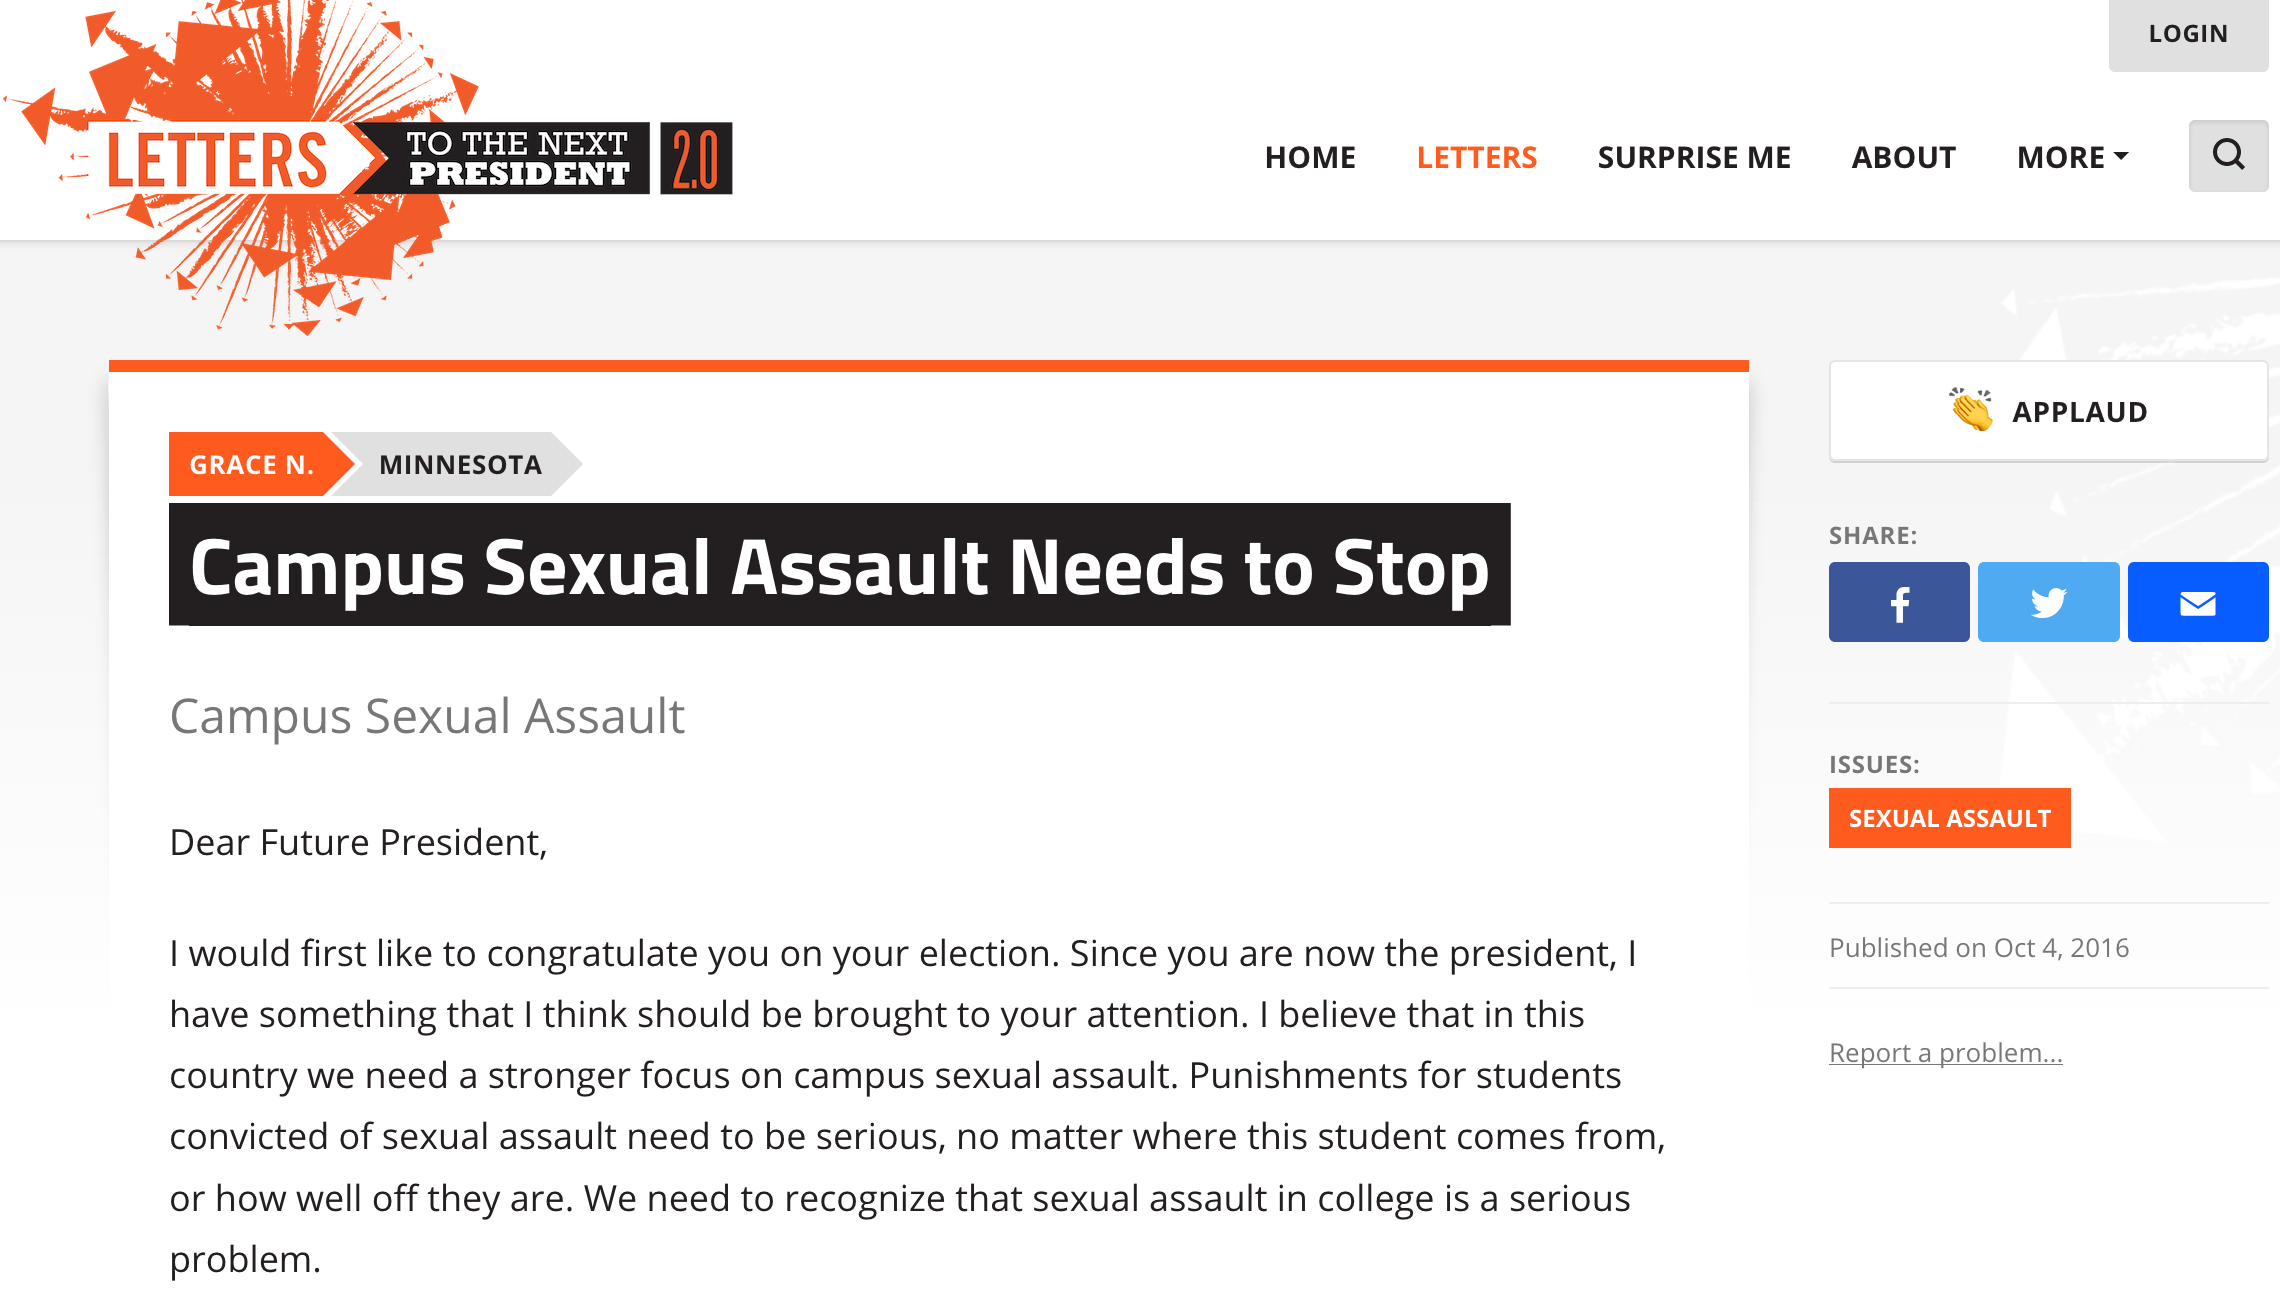 Campus Sexual Assault Needs to Stop L2P 2.0